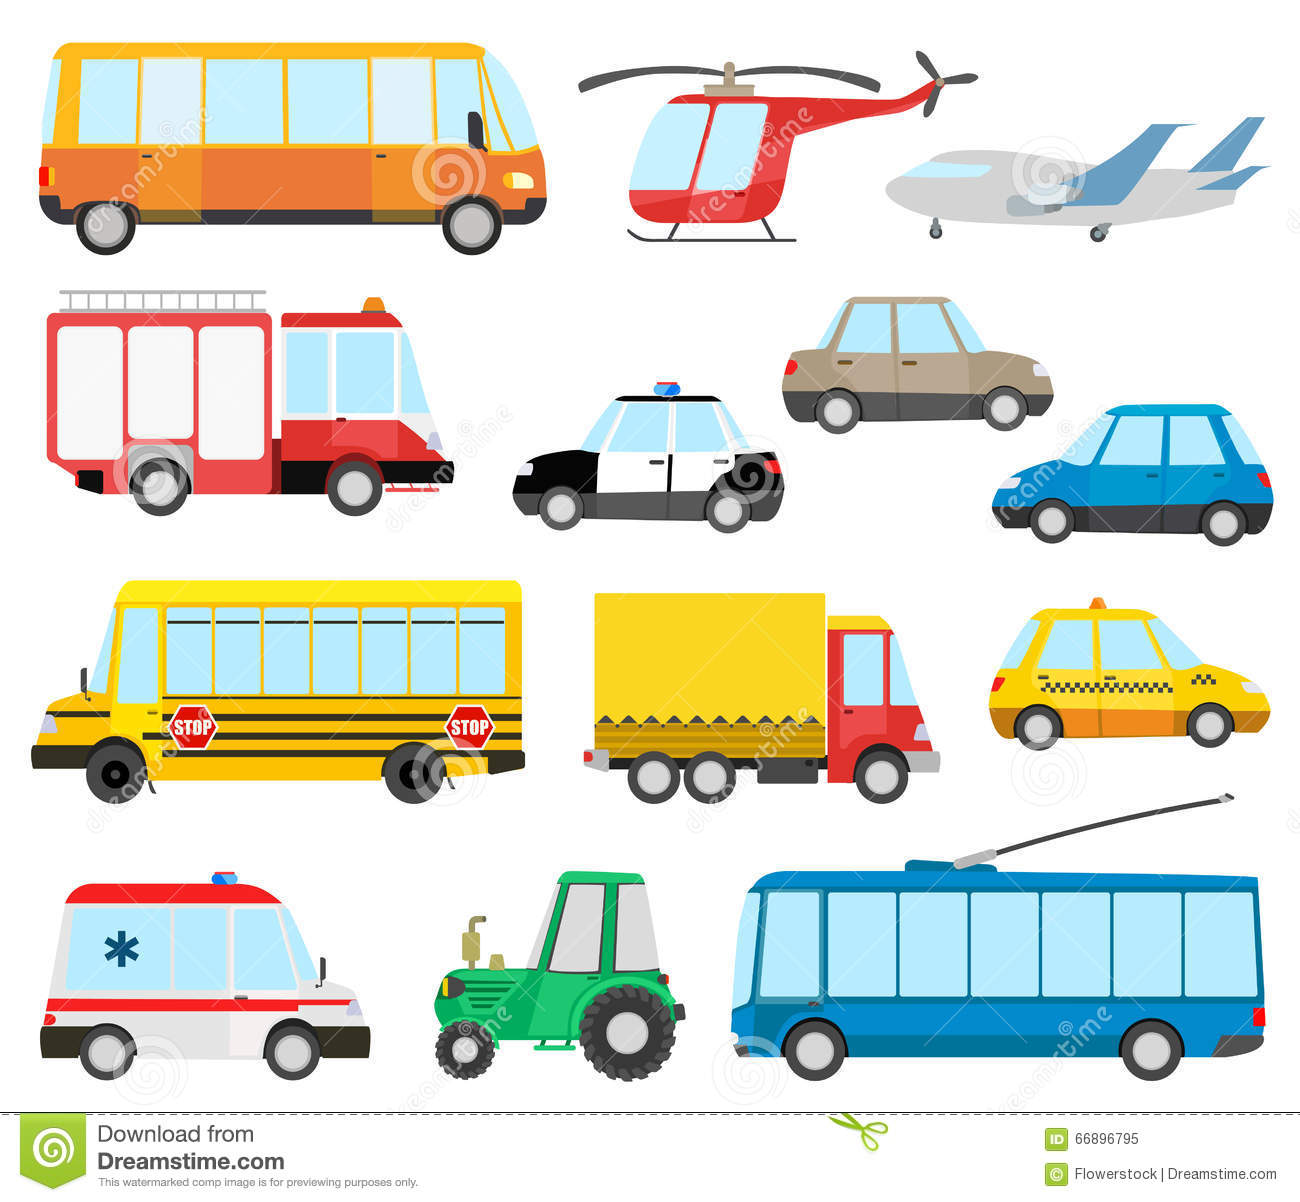 Senior transportation business plan